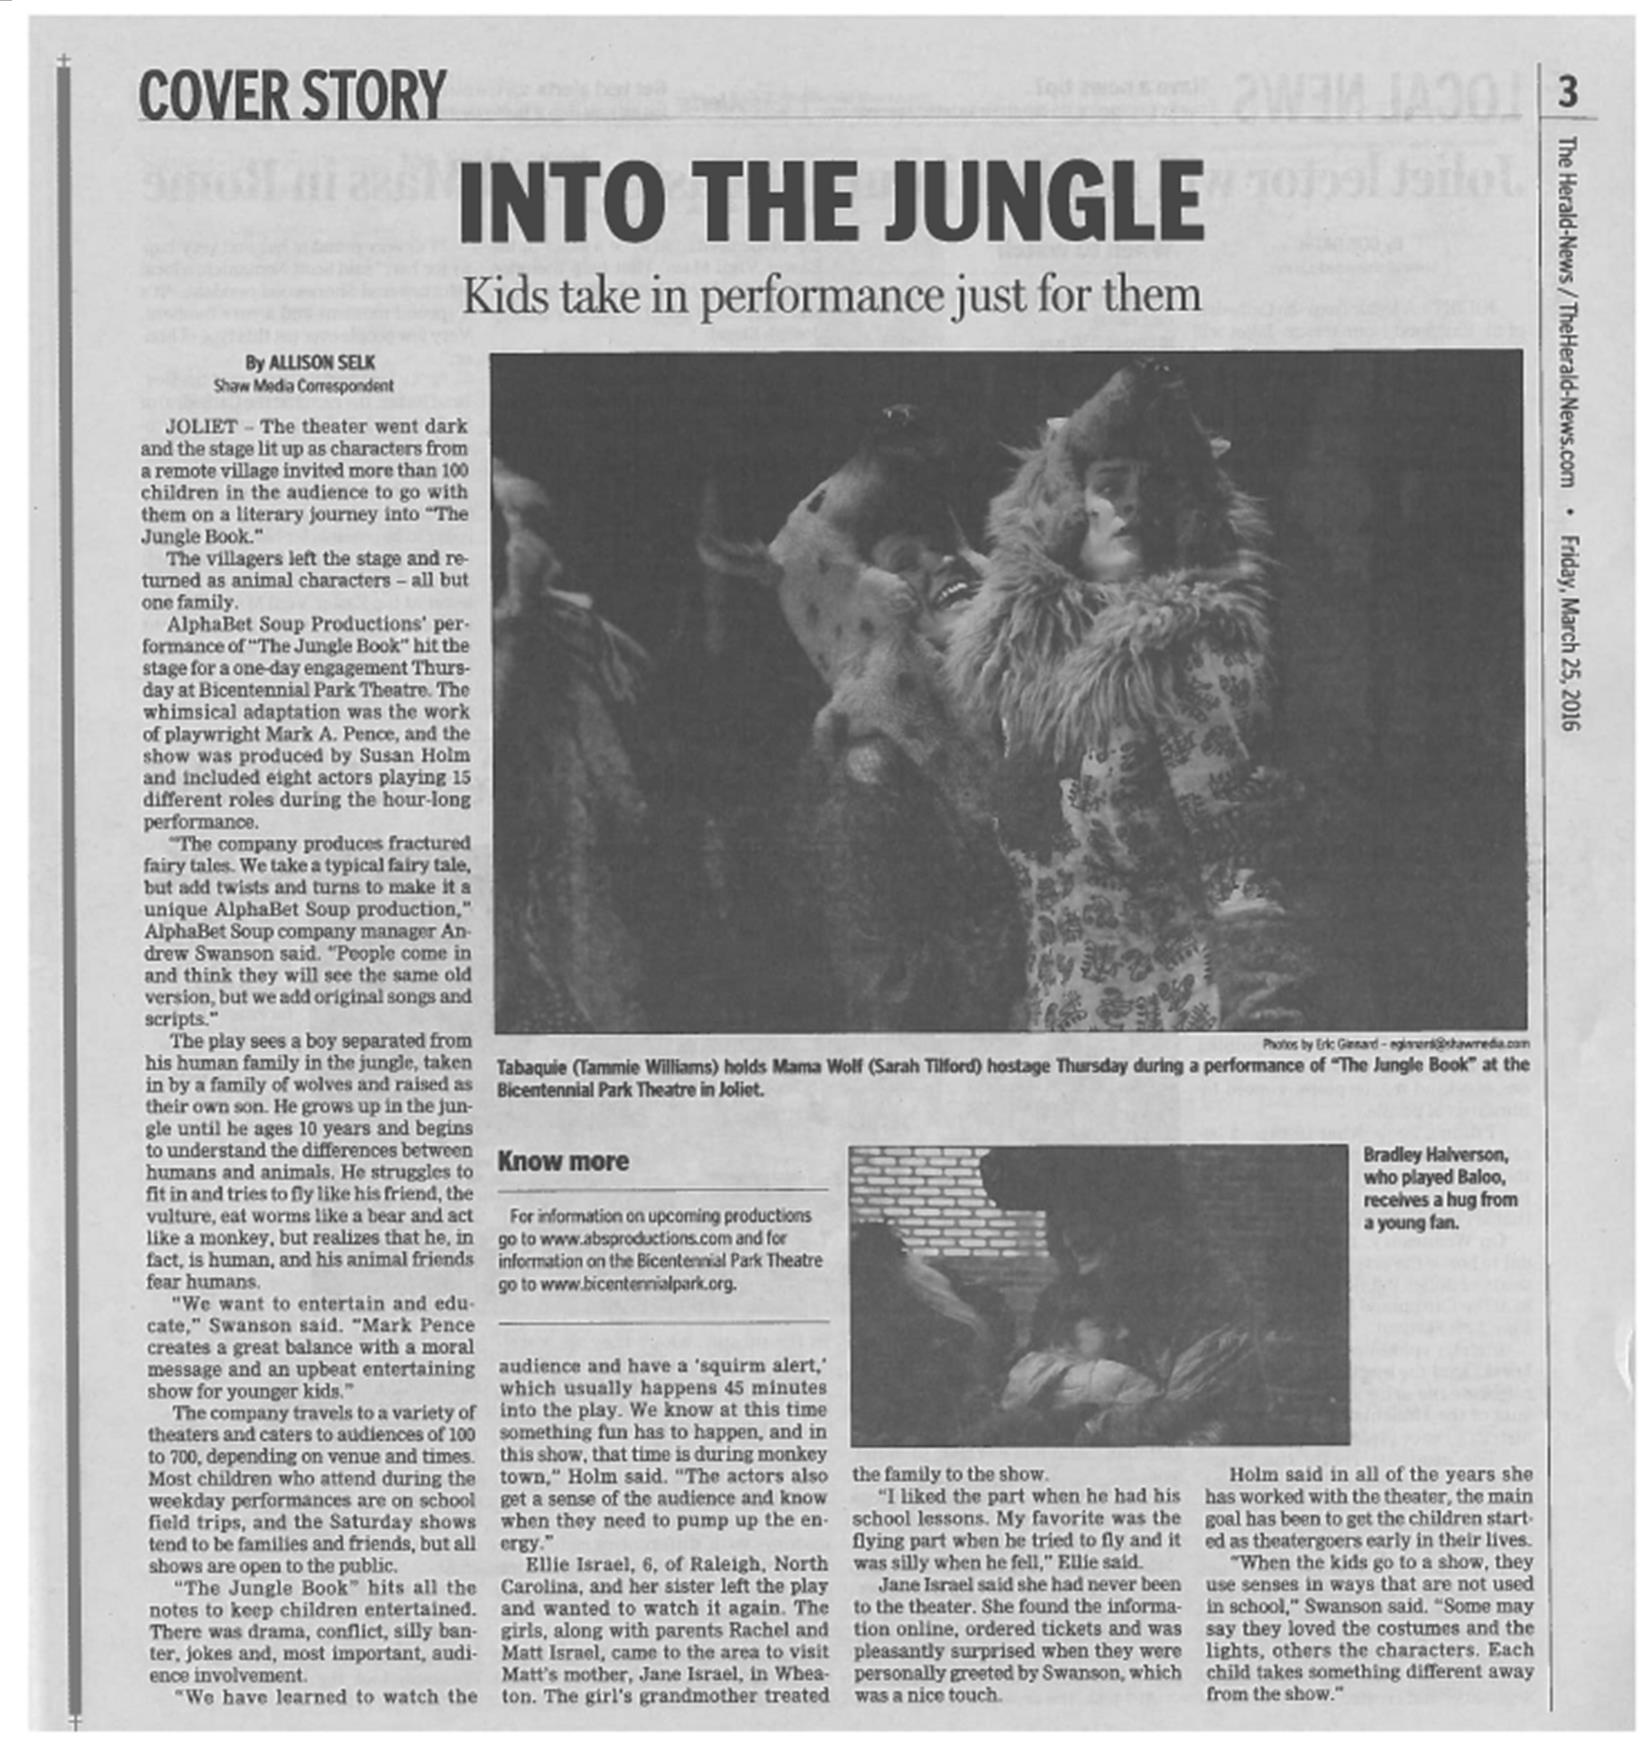 THE JUNGLE BOOK makes The Joliet Herald-News cover March 25, 2016